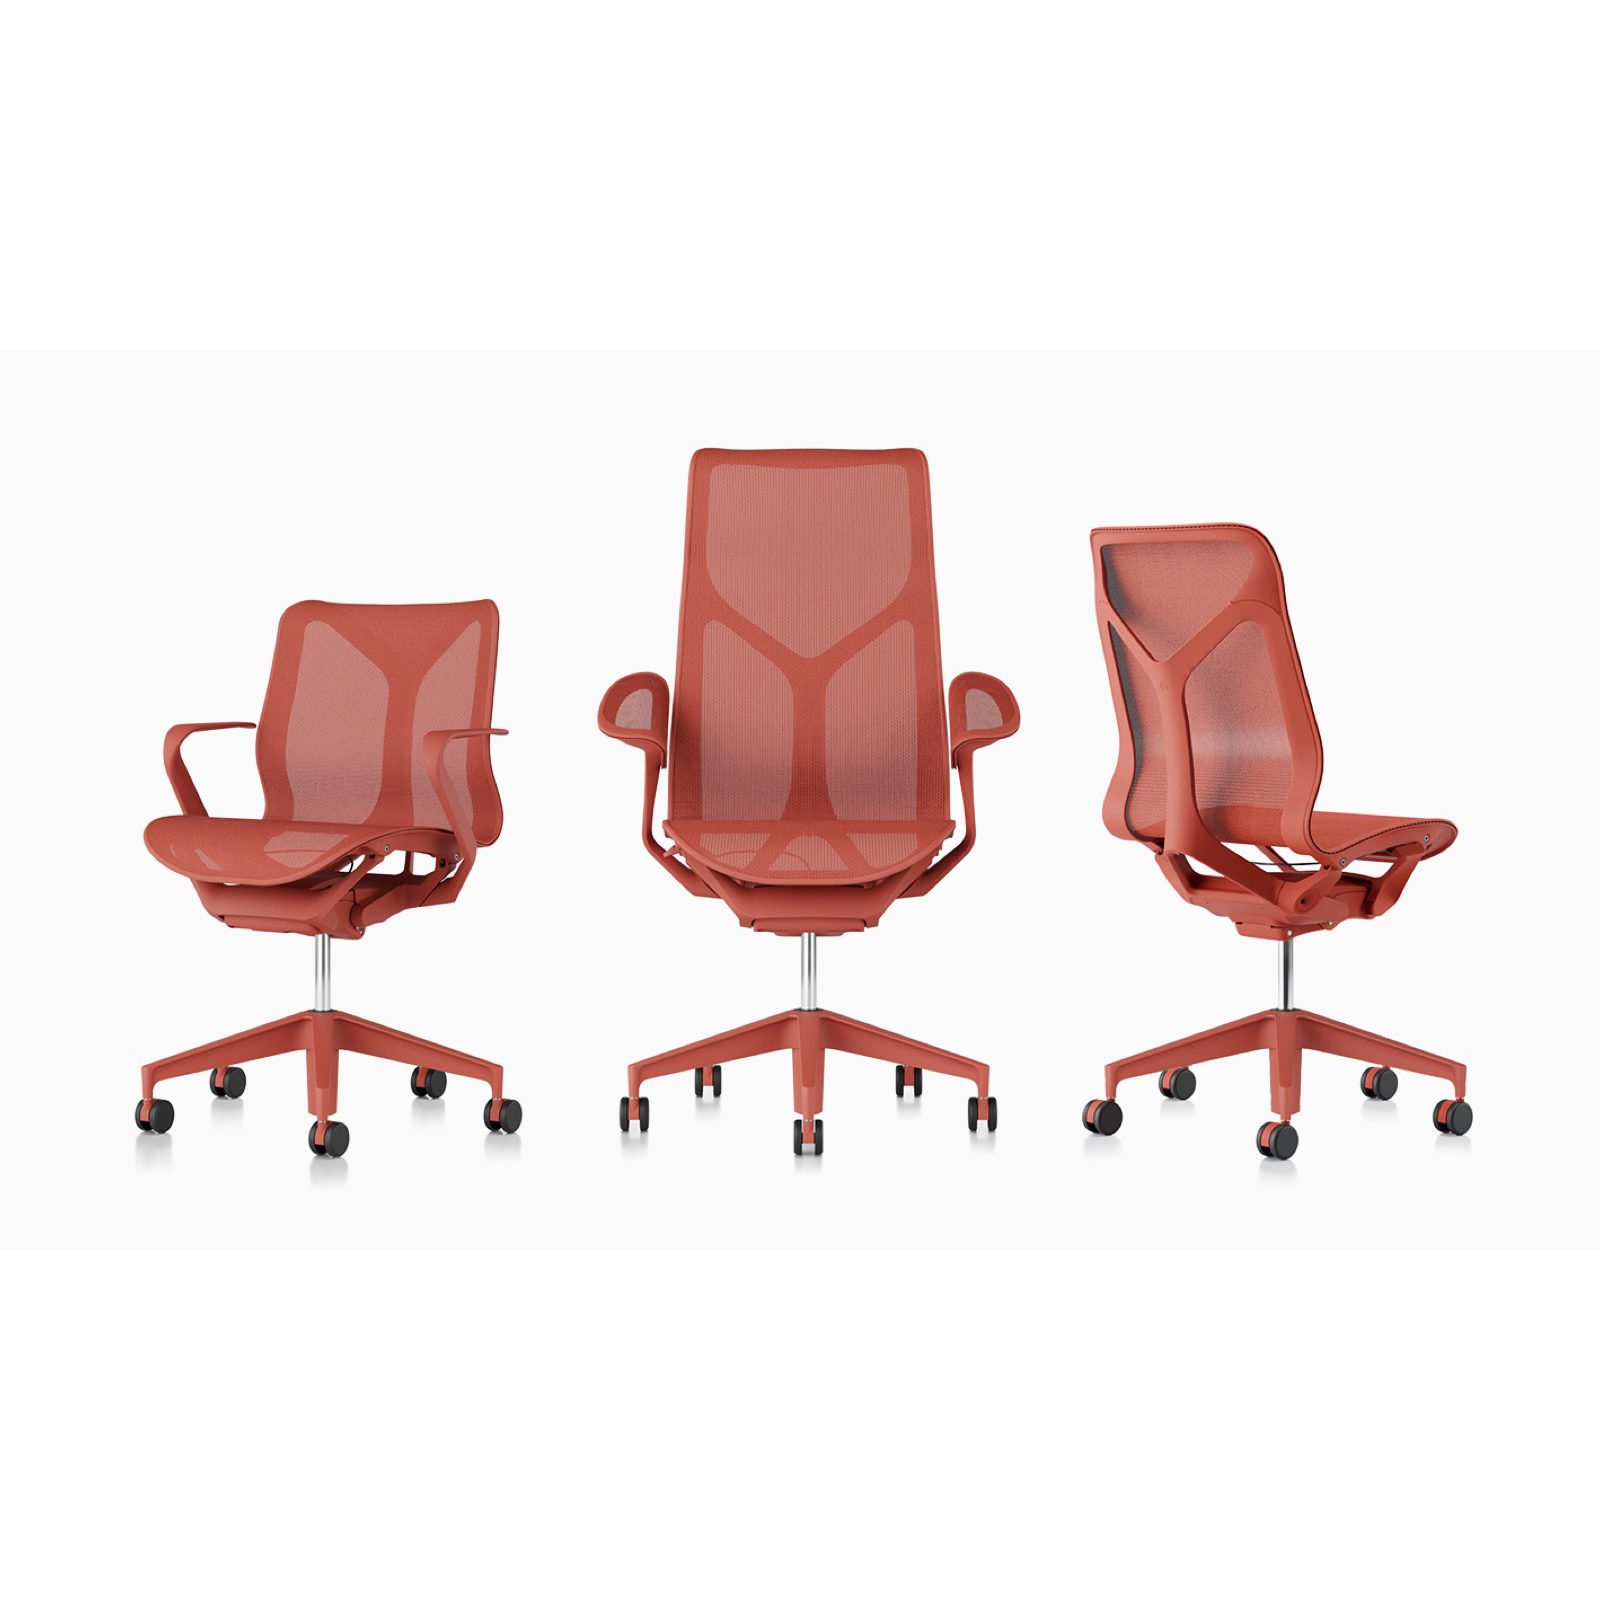 Cosm chairs canyon